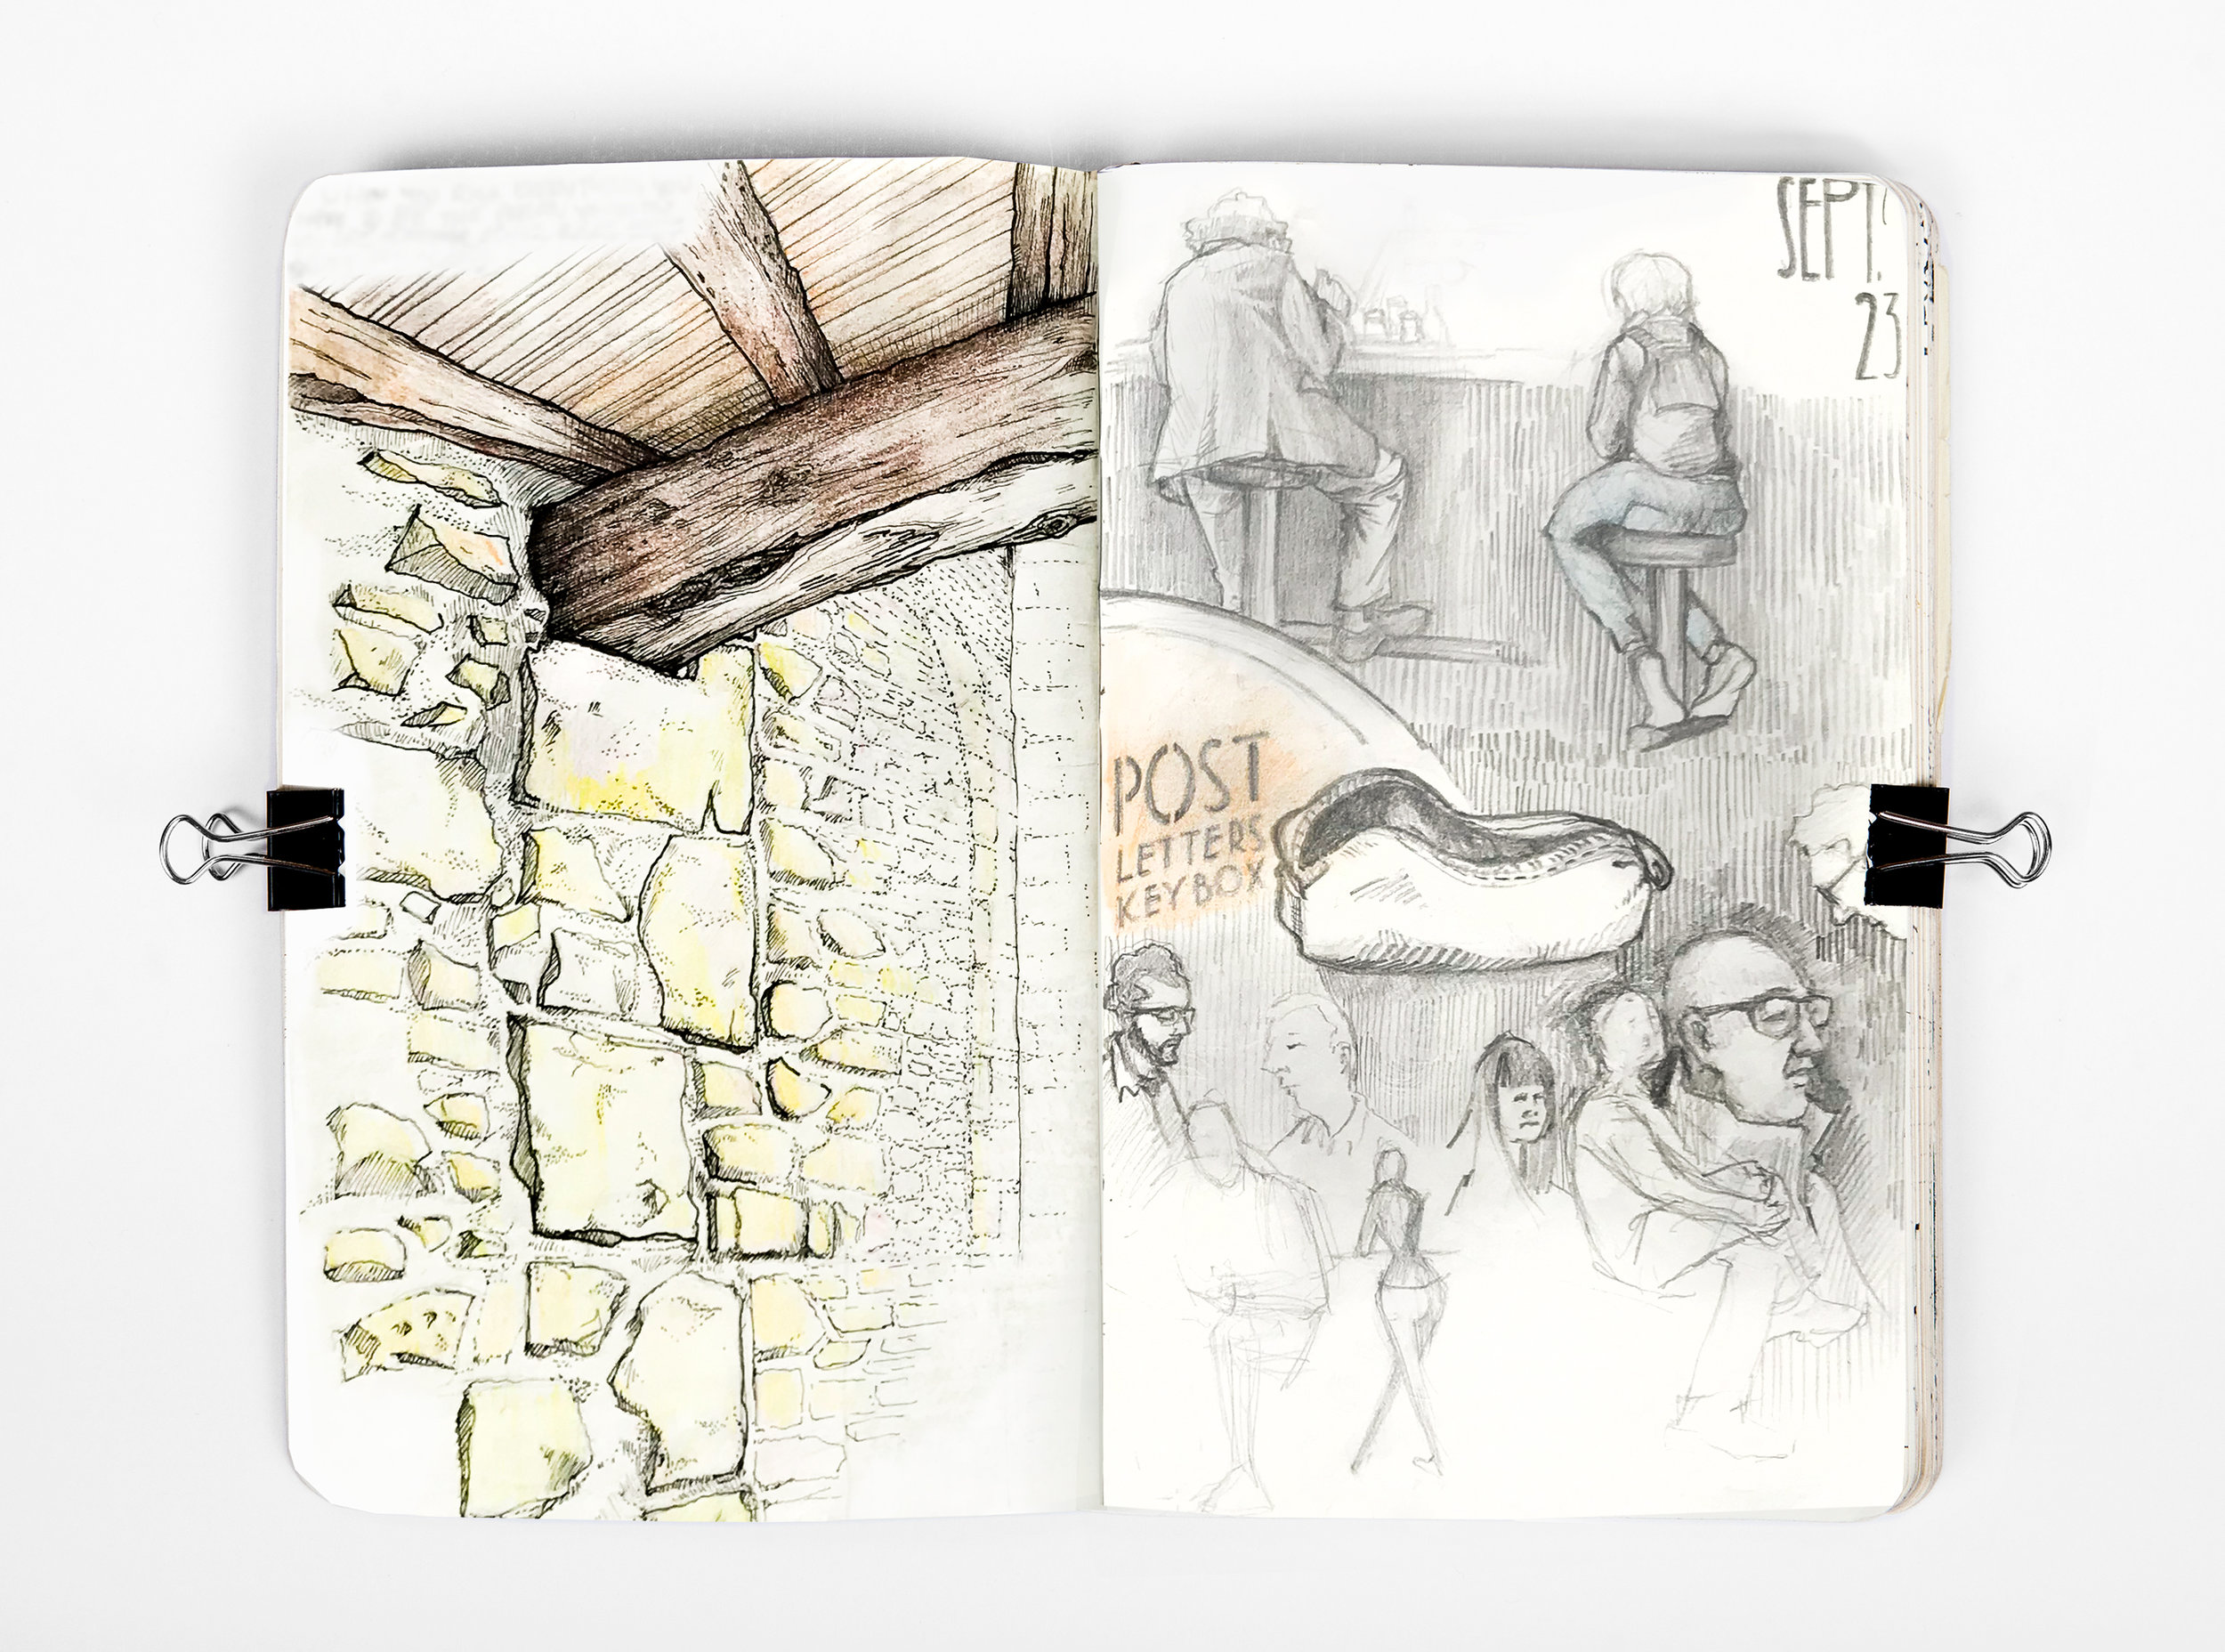 Sketchbook   Note-taking, doodle-making, trip-recording.